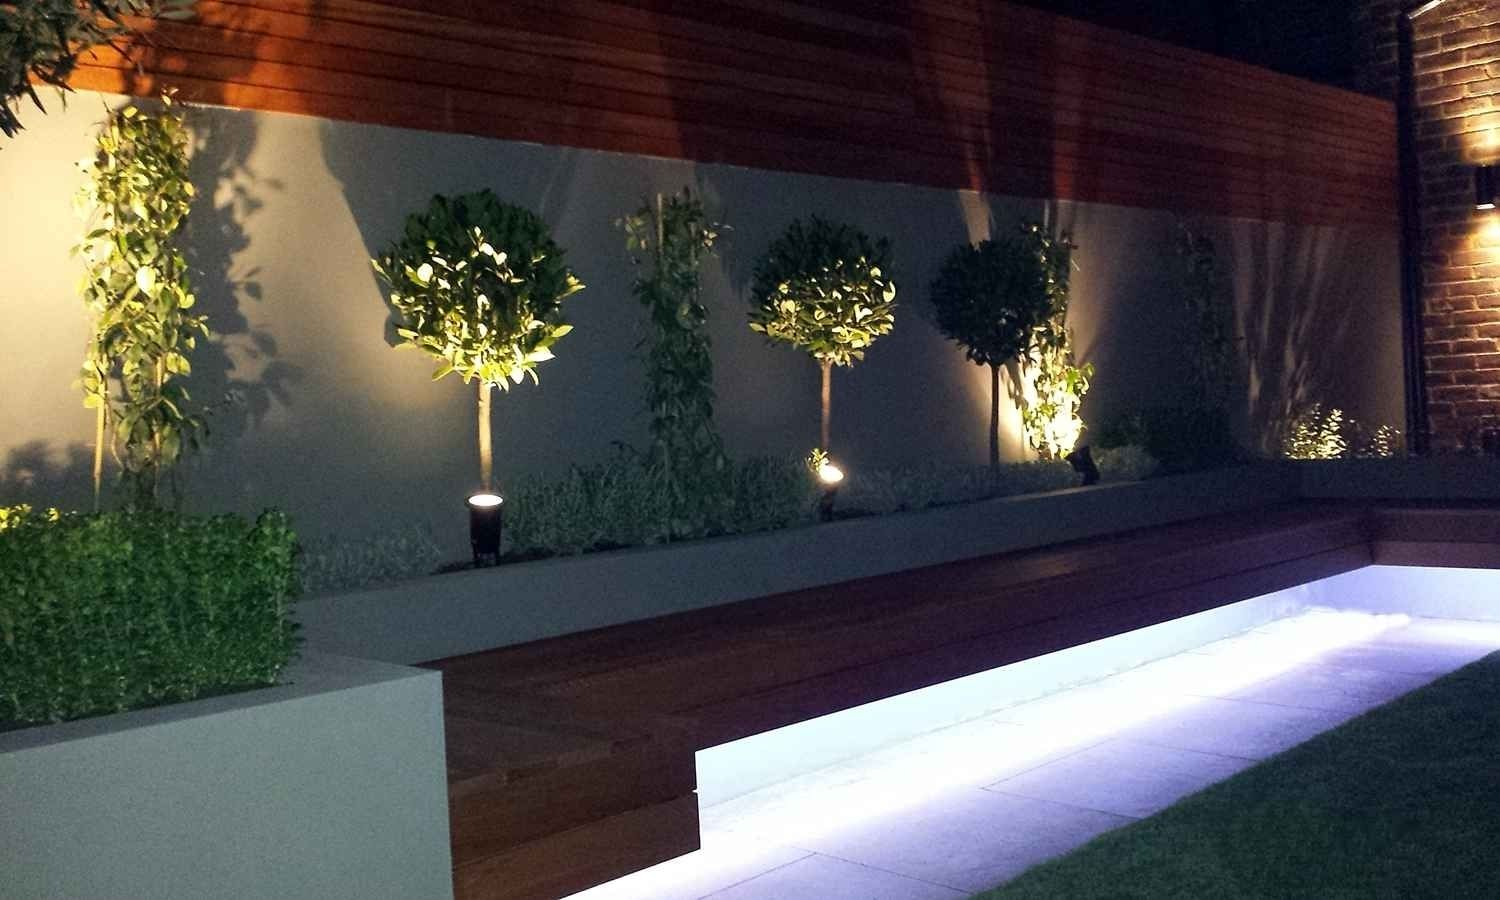 Garden Lighting Ideas Enhance It Night Beauty In 2020 With Images Modern Garden Lighting Modern Garden Modern Garden Design